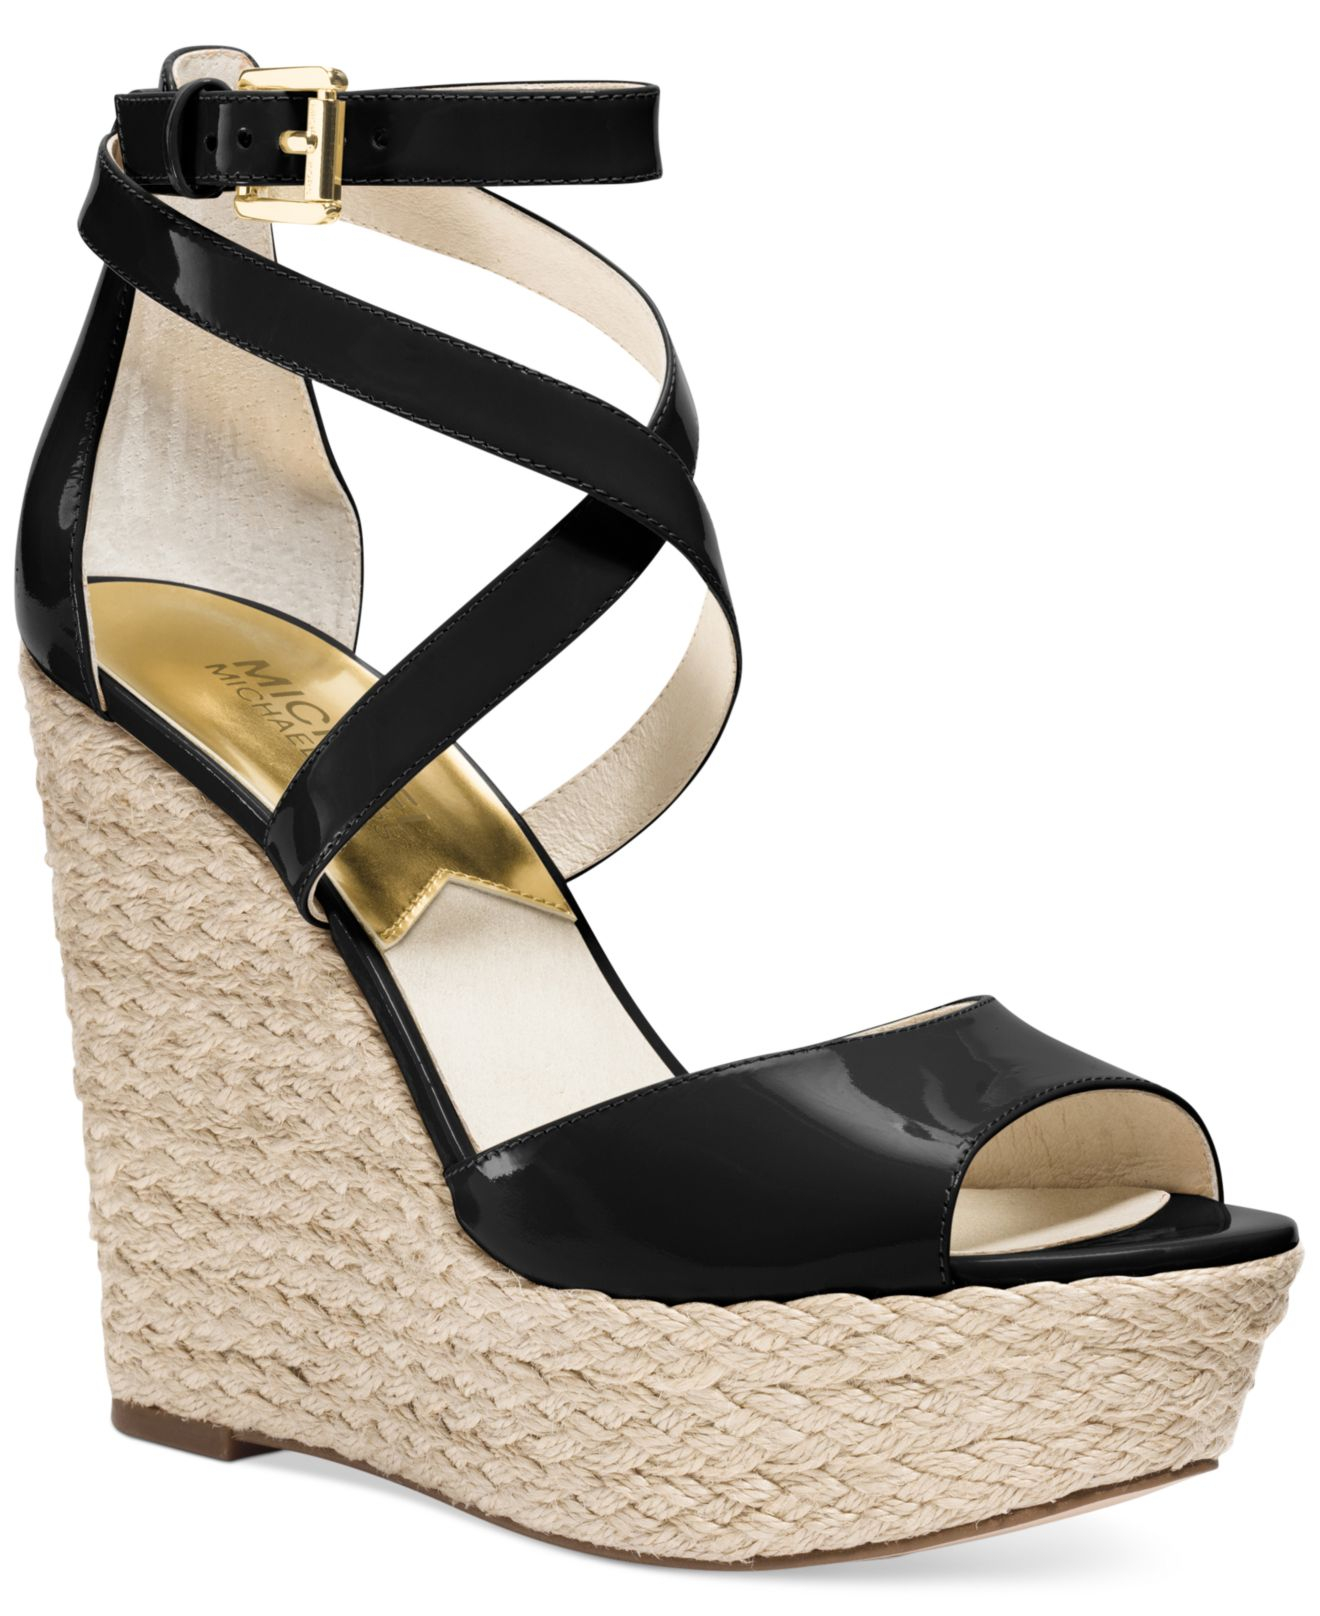 4a454317041 Lyst - Michael Kors Michael Gabriella Platform Wedge Sandals in Black